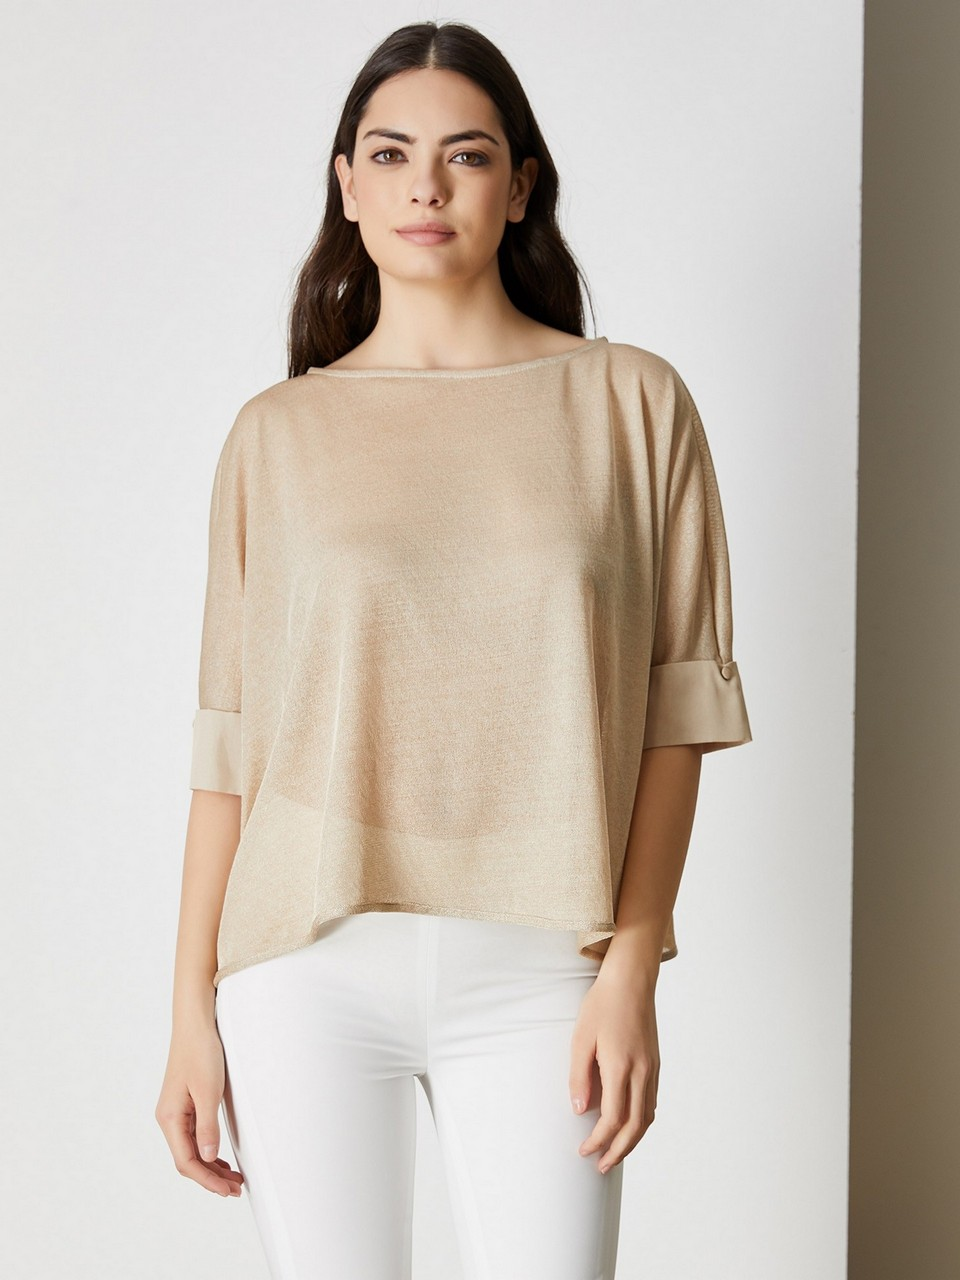 Boat Neck Three Quarter Sleeve Blouse